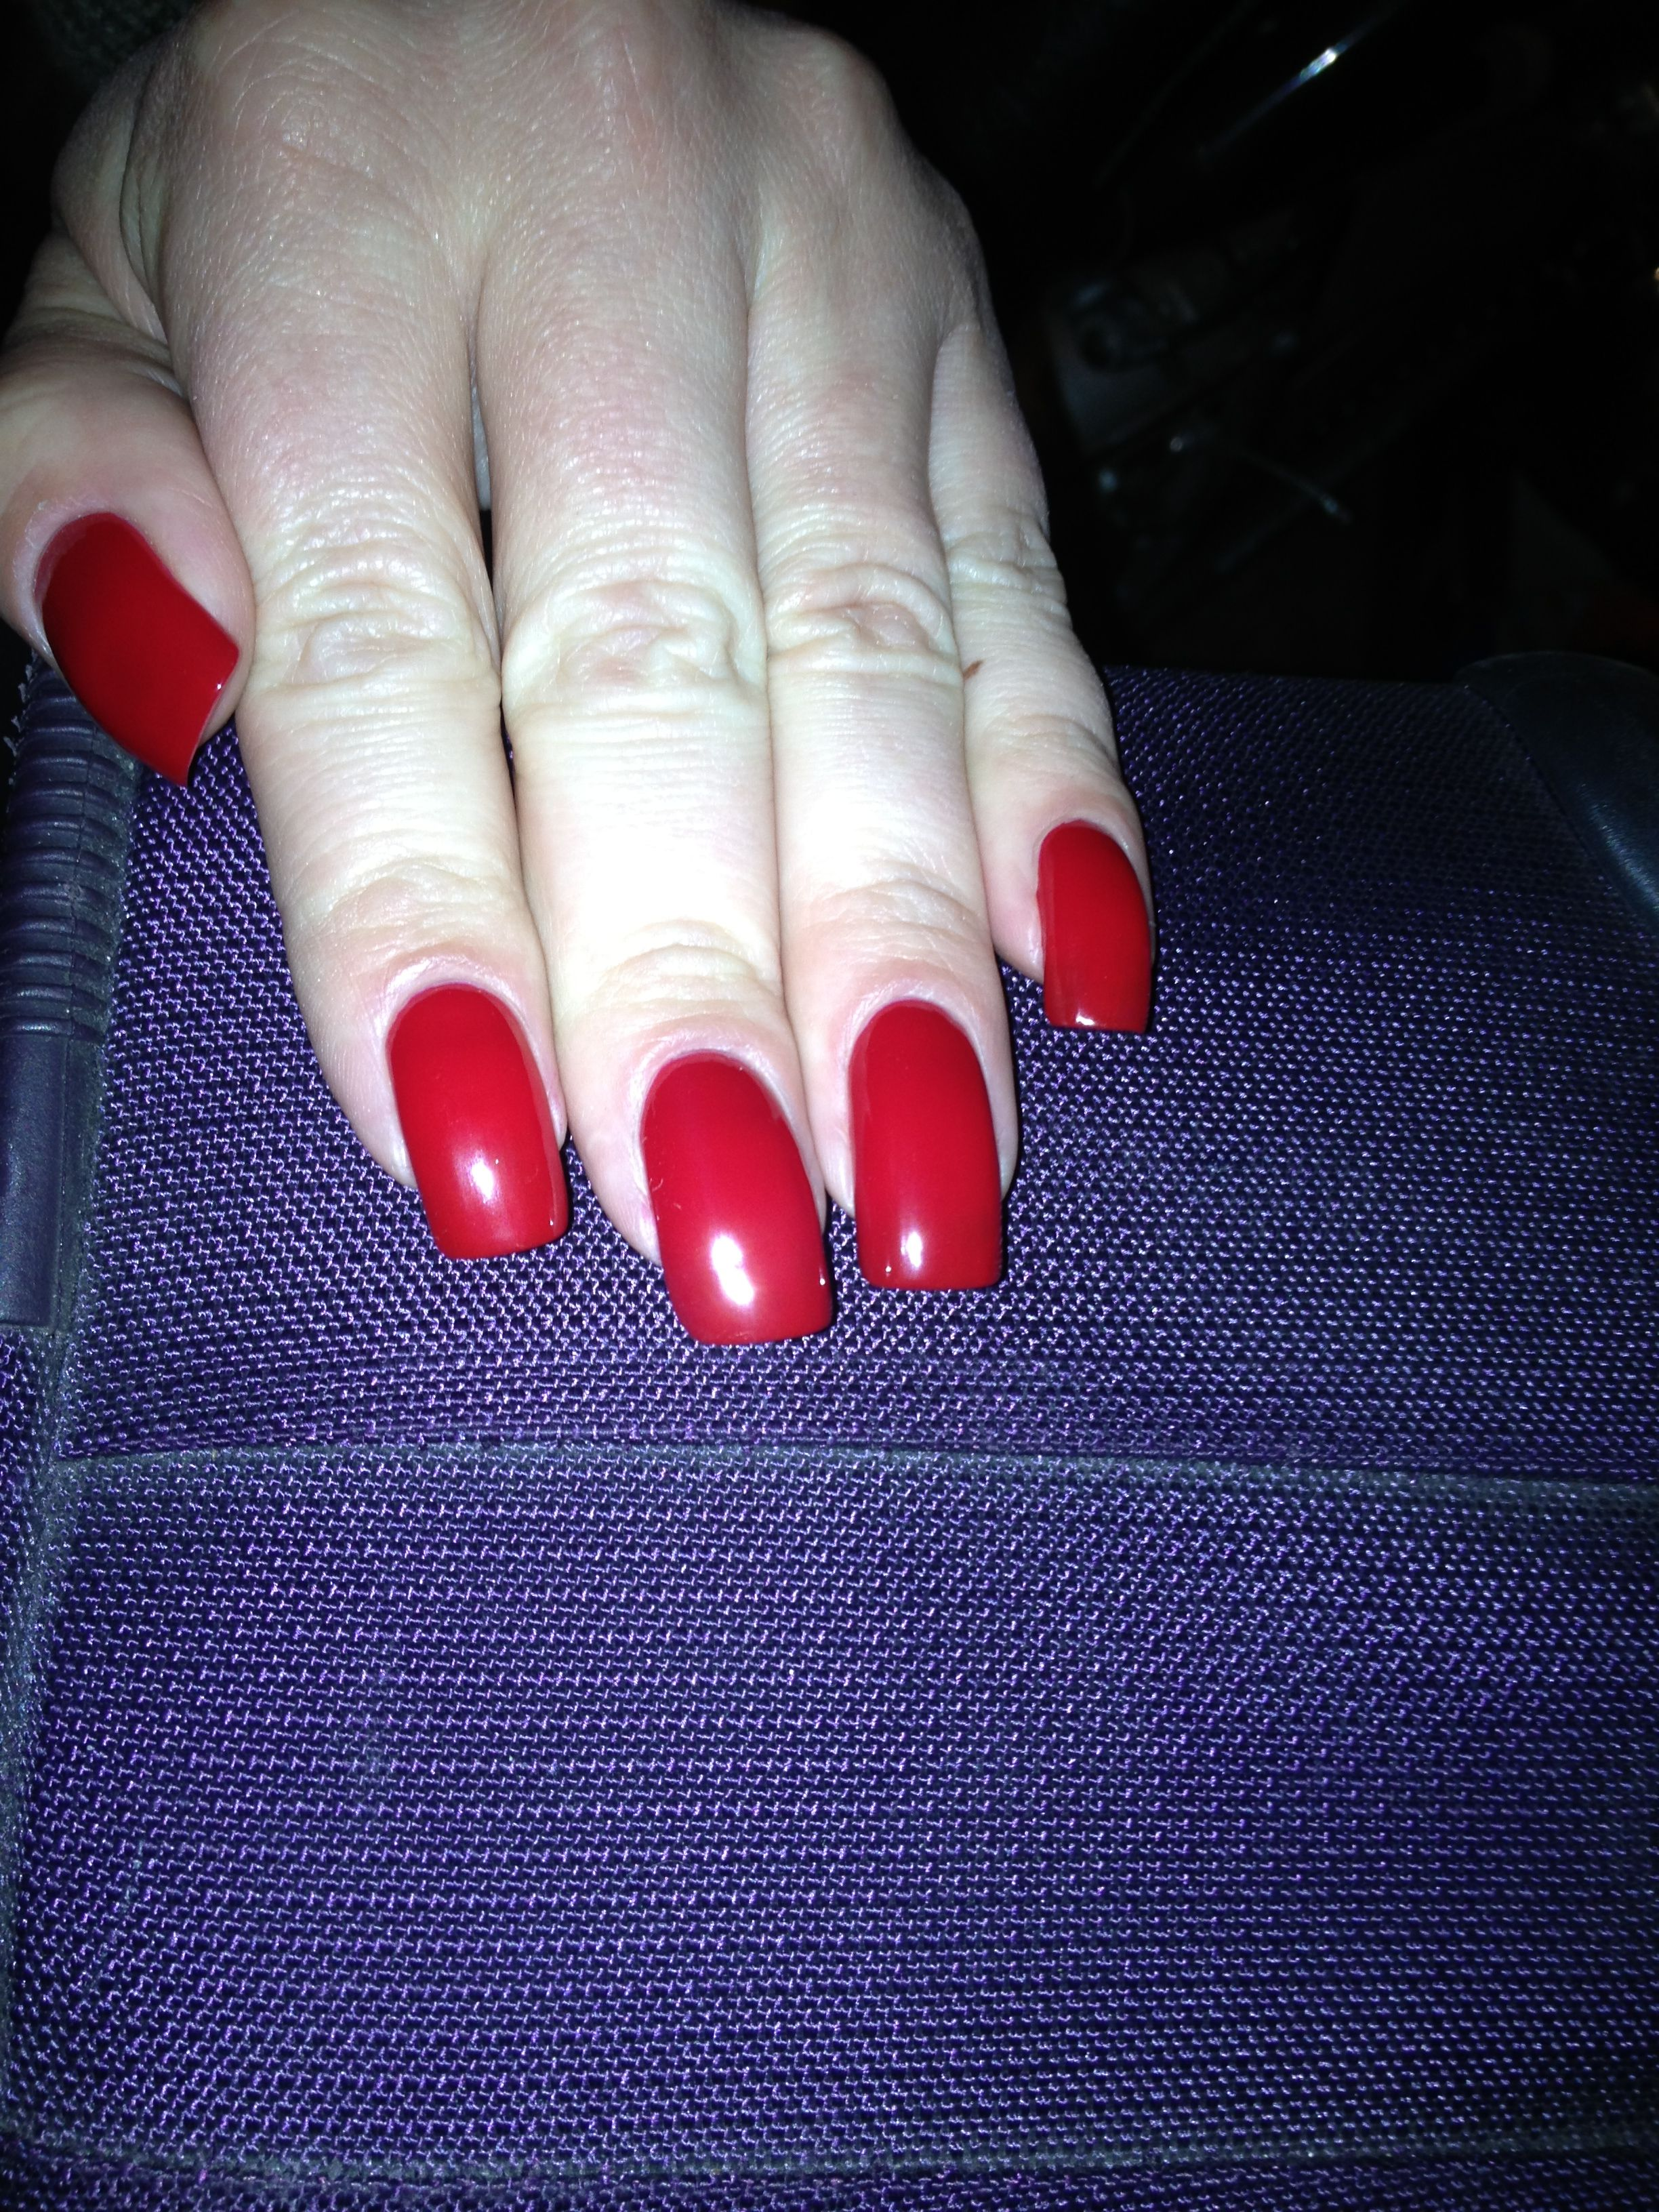 Red hot nails nails pinterest hot nails nails and red manicure